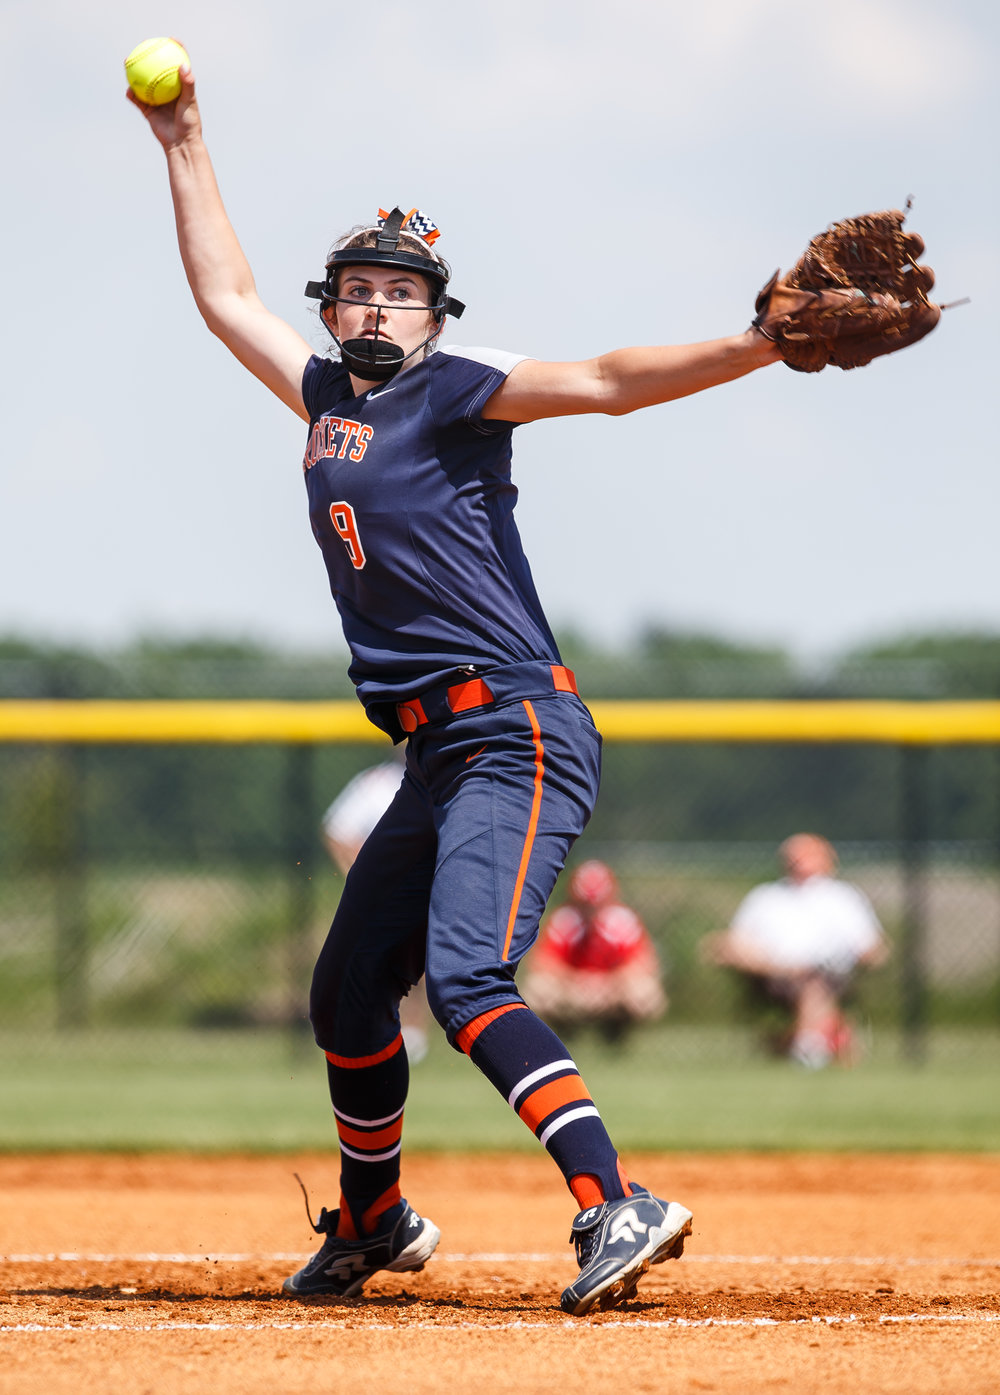 Rochester's Reagan Miles (9) delivers a pitch against Glenwood in the first inning during the Class 3A Glenwood Sectional championship at Glenwood High School, Saturday, June 3, 2017, in Chatham, Ill. [Justin L. Fowler/The State Journal-Register]